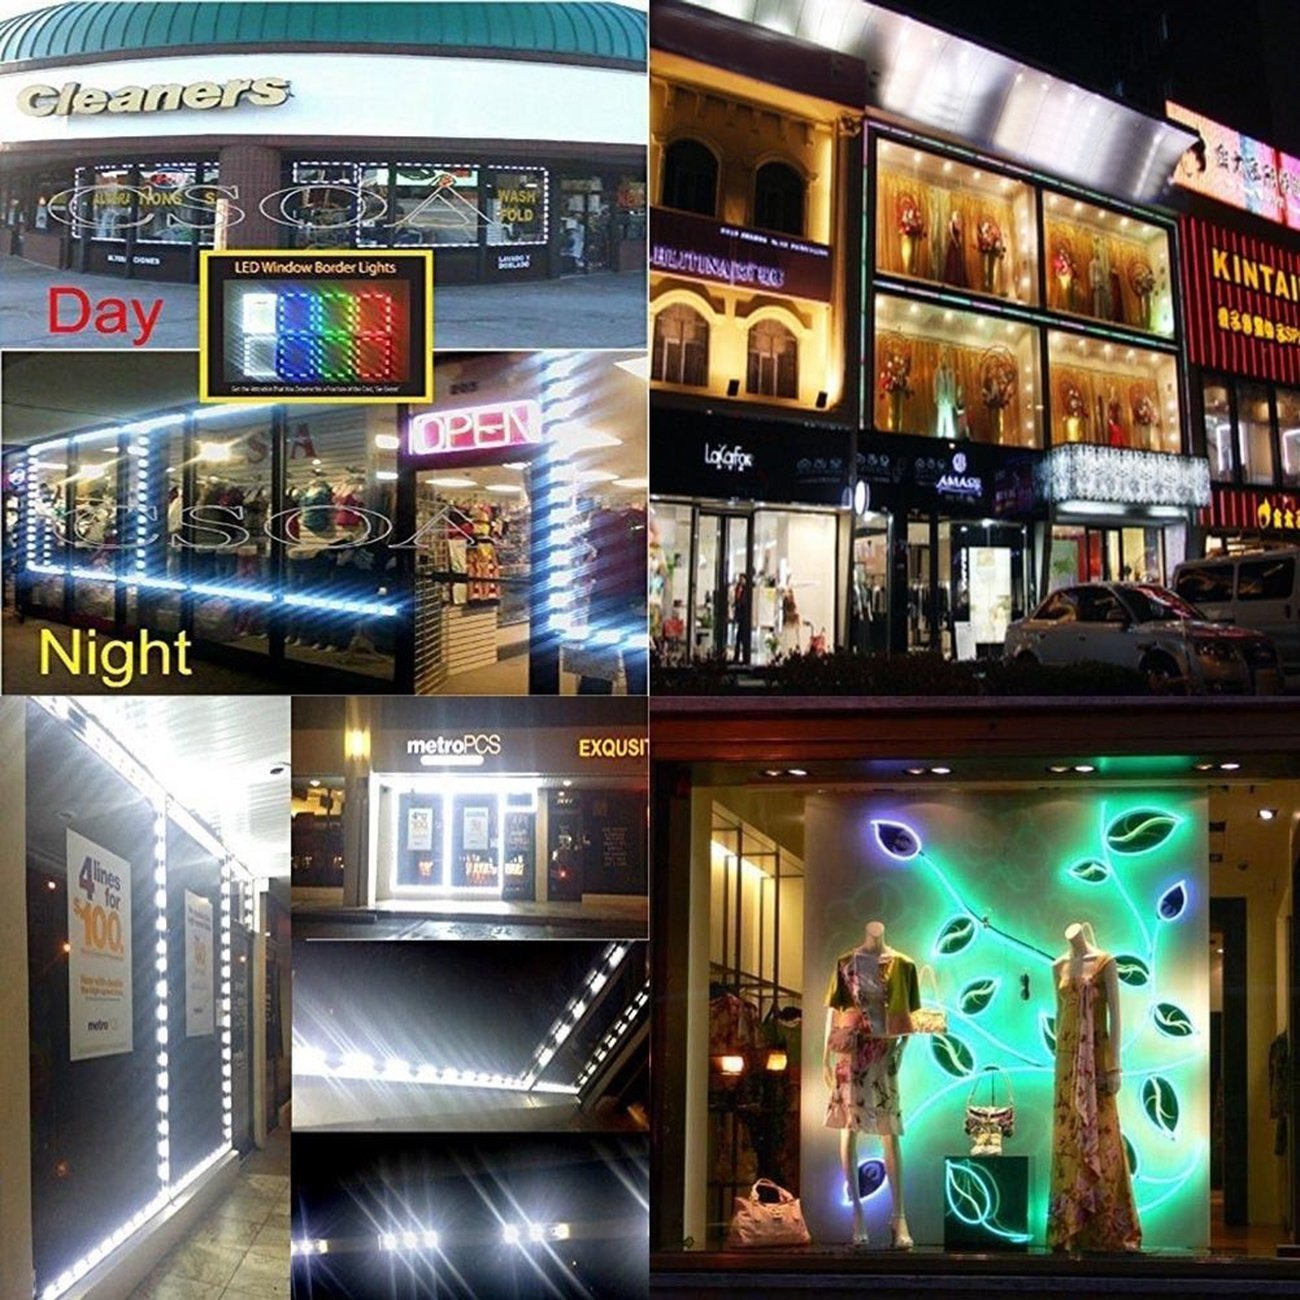 Storefront Lights, Pomelotree 2 Pack 3 Led 40PCS 5050 Super Bright LED Module Lights Waterproof Decorative Light with Tape Adhesive for Store Window Lighting and Advertising Signs by Pomelotree (Image #5)